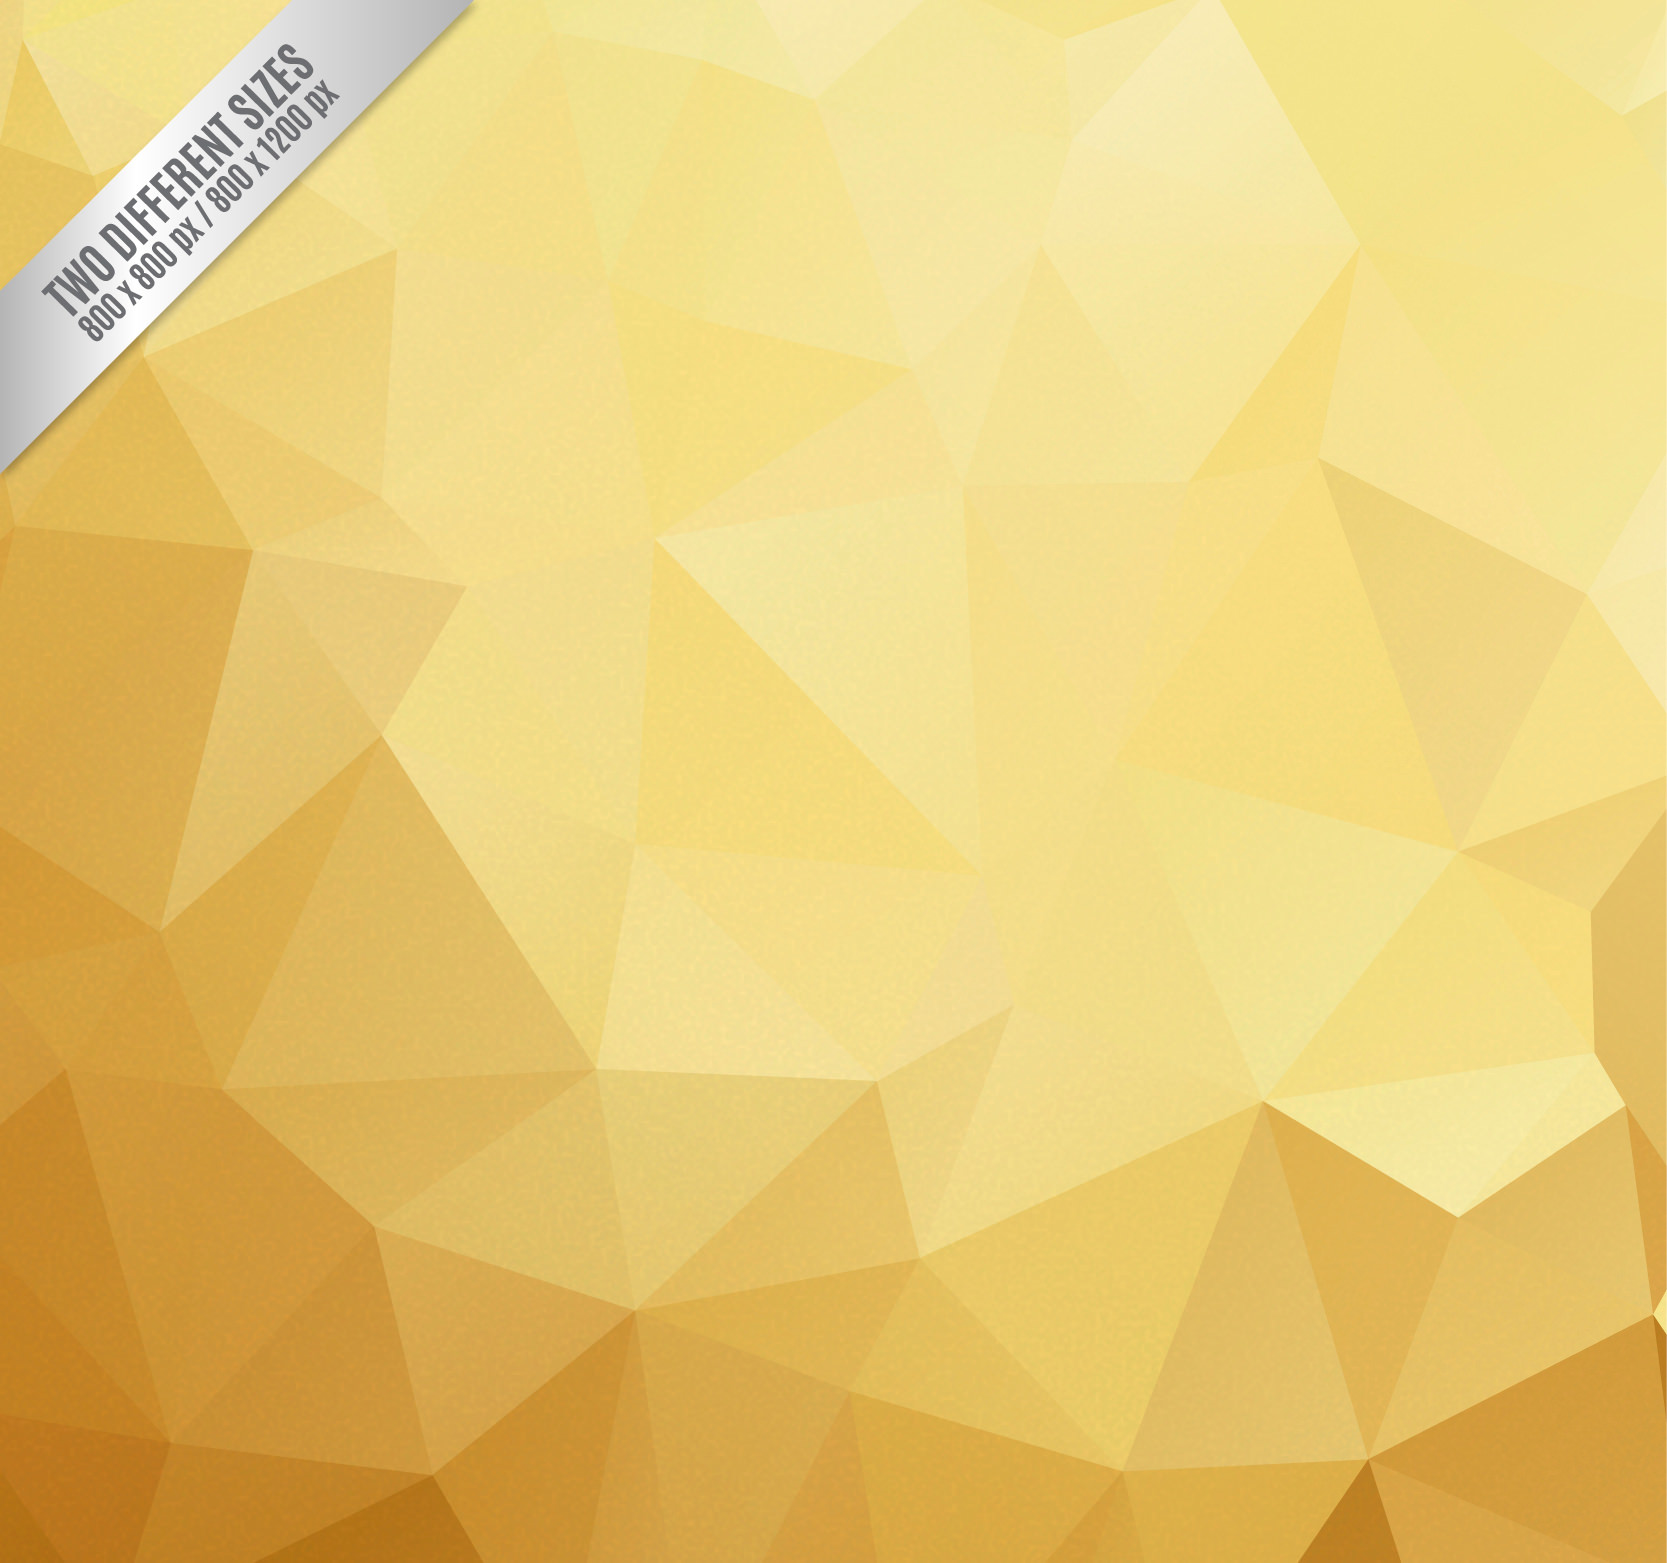 Polygon Background in Gold Tone